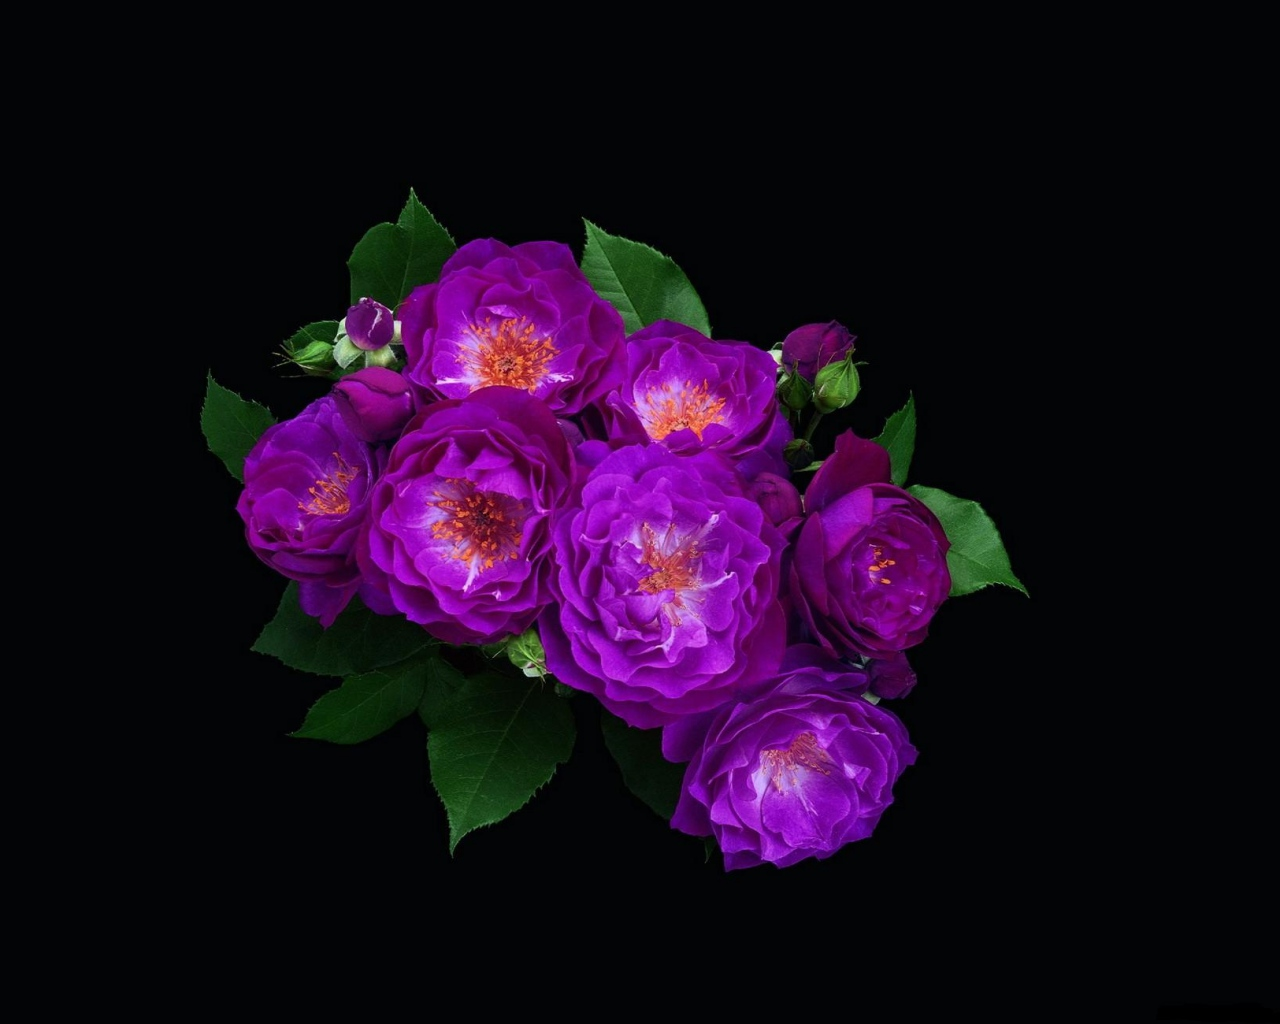 Flowers on Black Background Wallpaper - WallpaperSafari